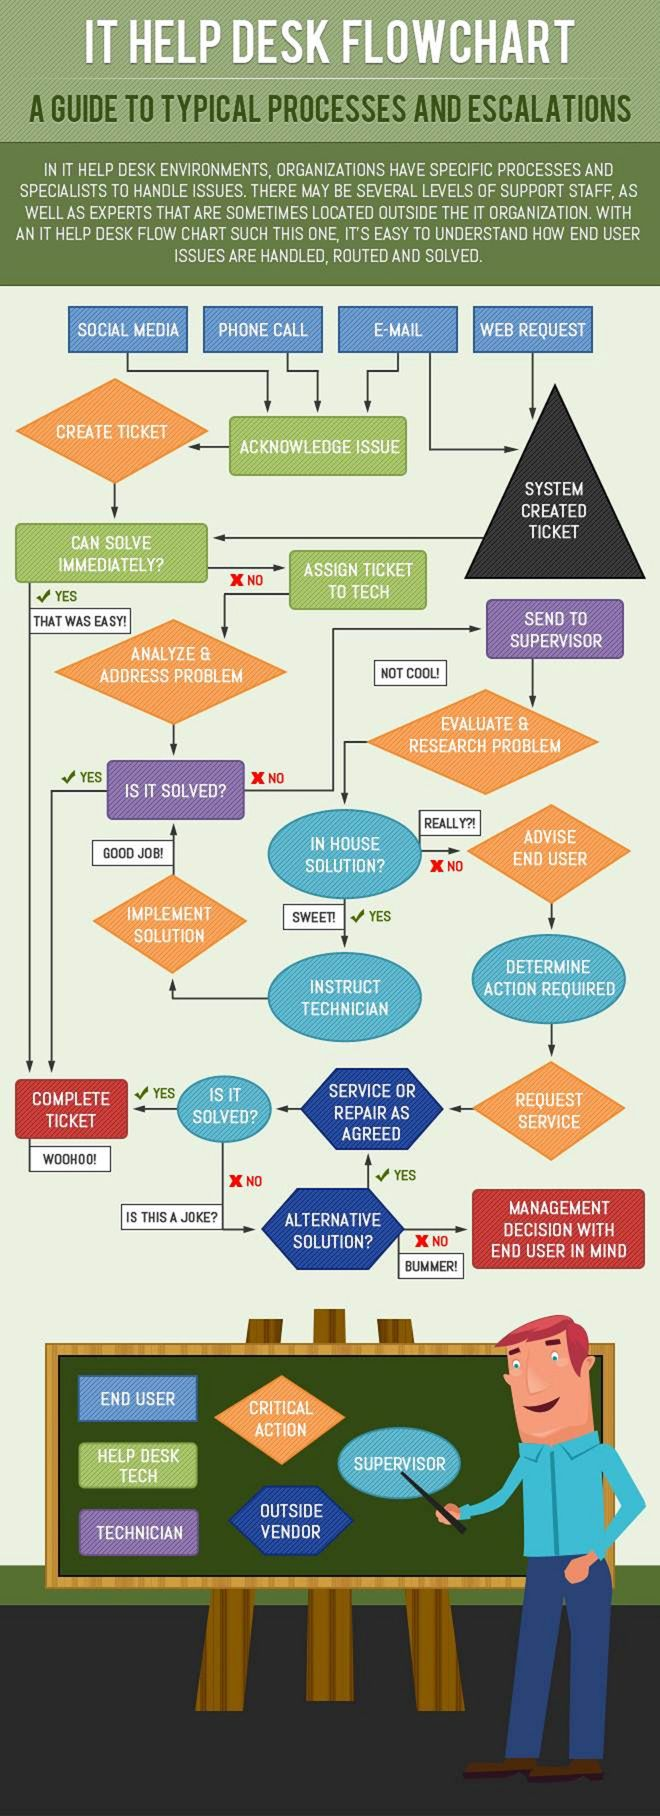 IT Help Desk Flowchart: A Guide To Typical Processes And Escalations